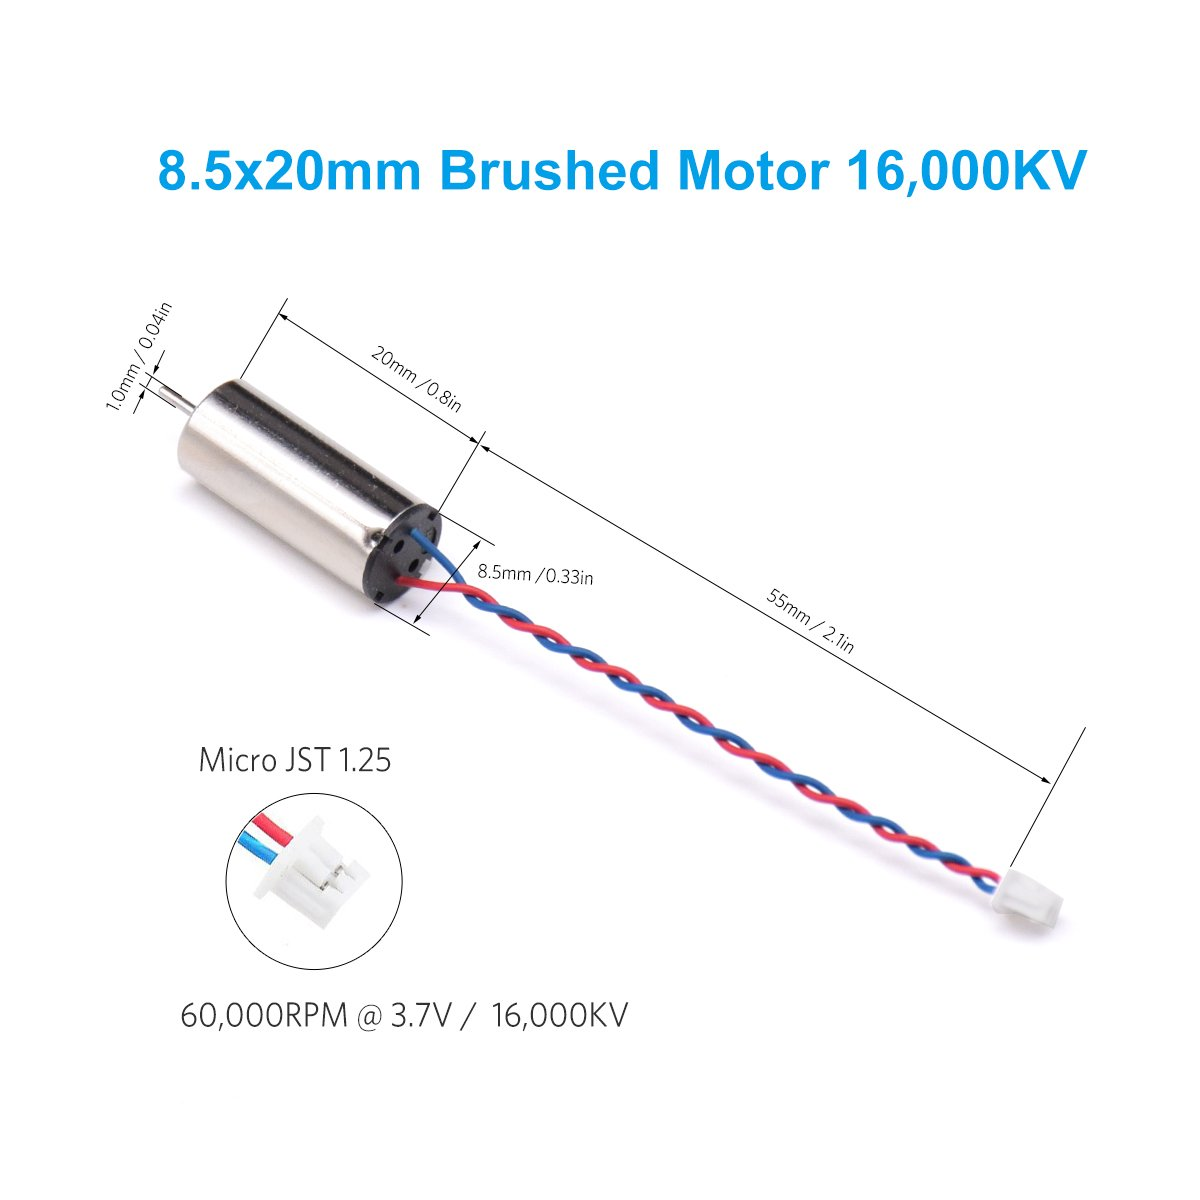 BETAFPV 4pcs 8.5/×20mm Motor 16000KV Brushed Motors 2CW 2CCW with JST-1.25 Connector for Micro Whoop Beta85 Frame